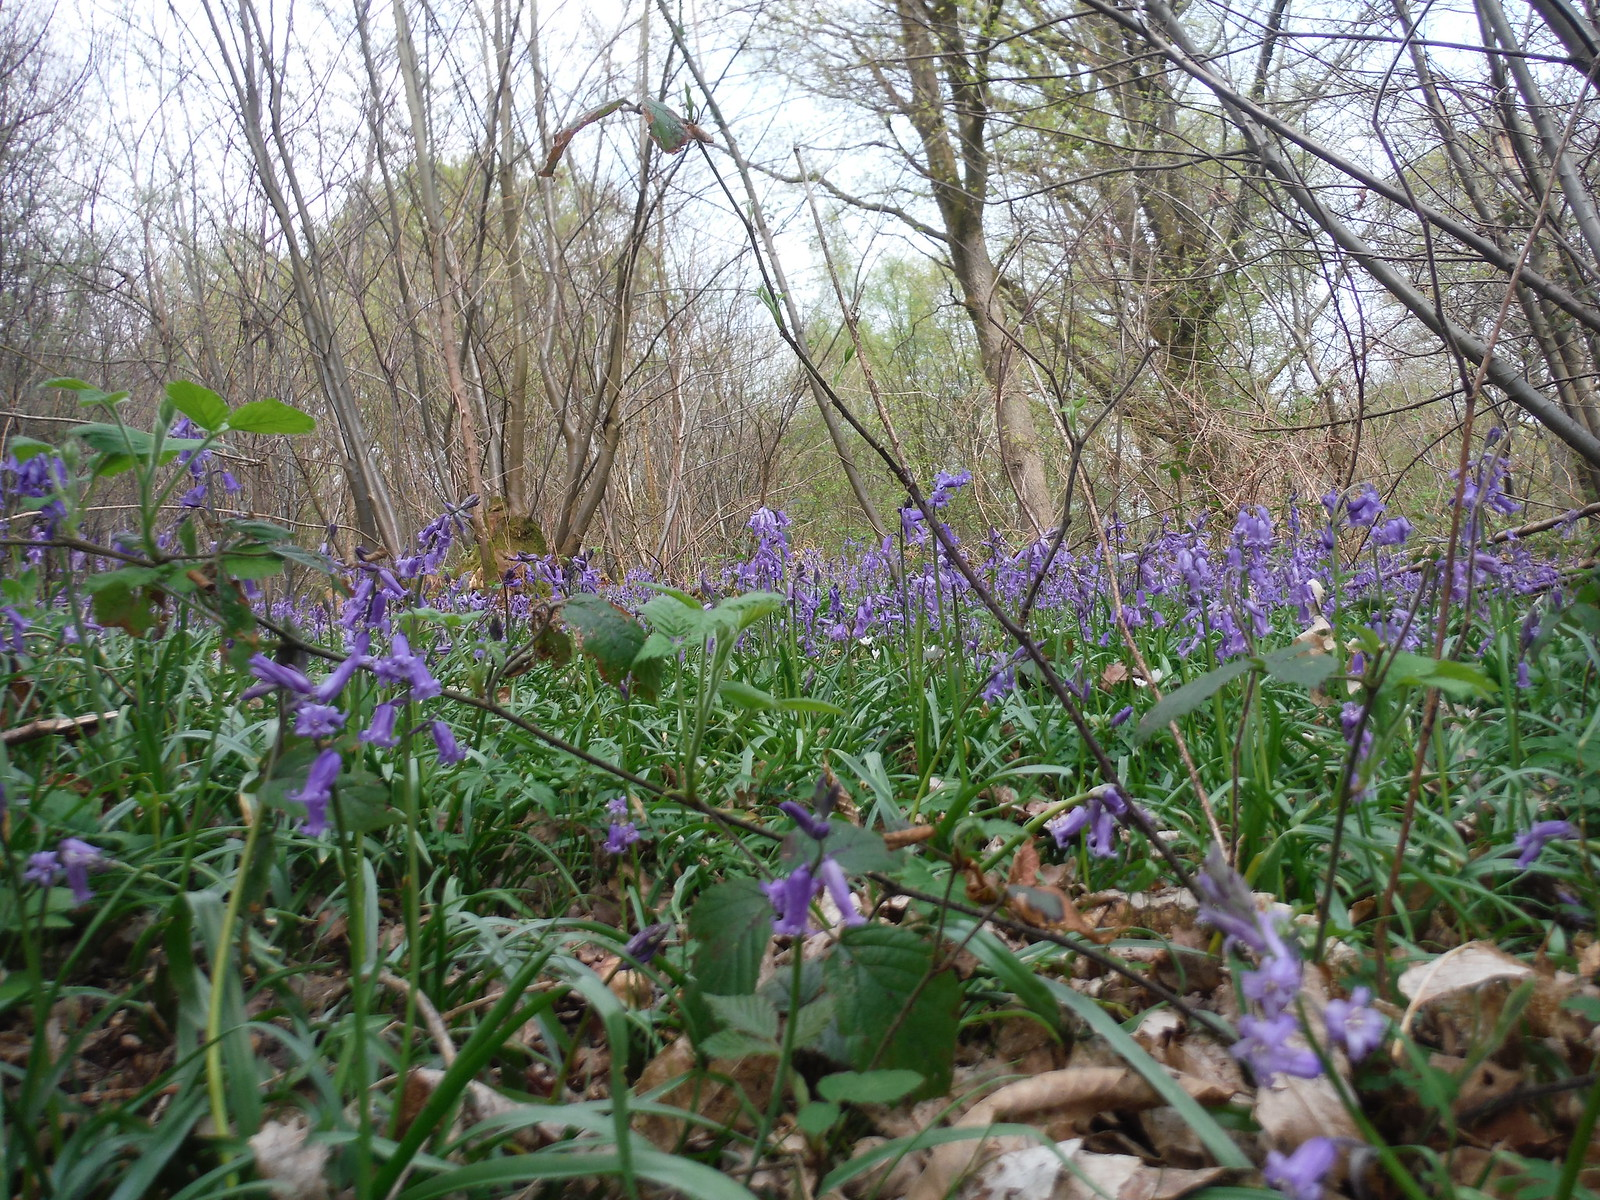 Bluebells in Spring Coppice SWC Walk 48 Haslemere to Midhurst (via Lurgashall or Lickfold)